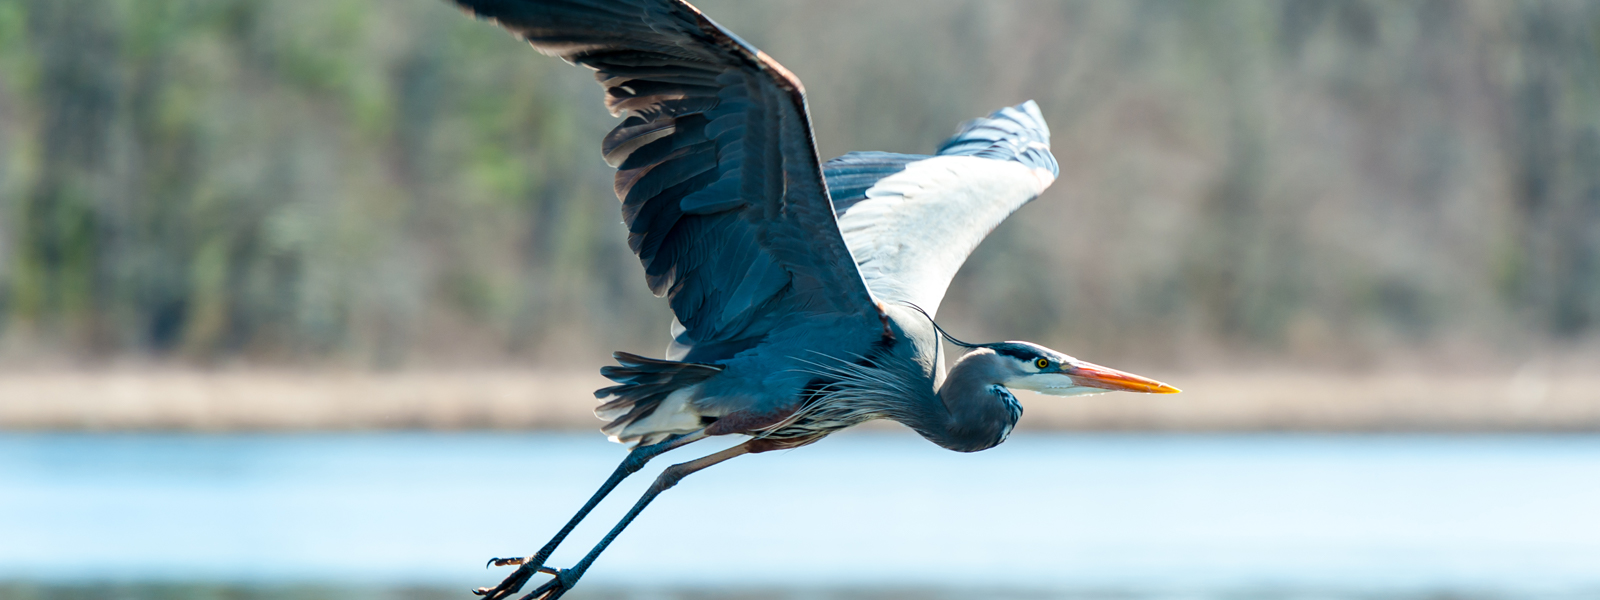 A heron flapping it's large wings